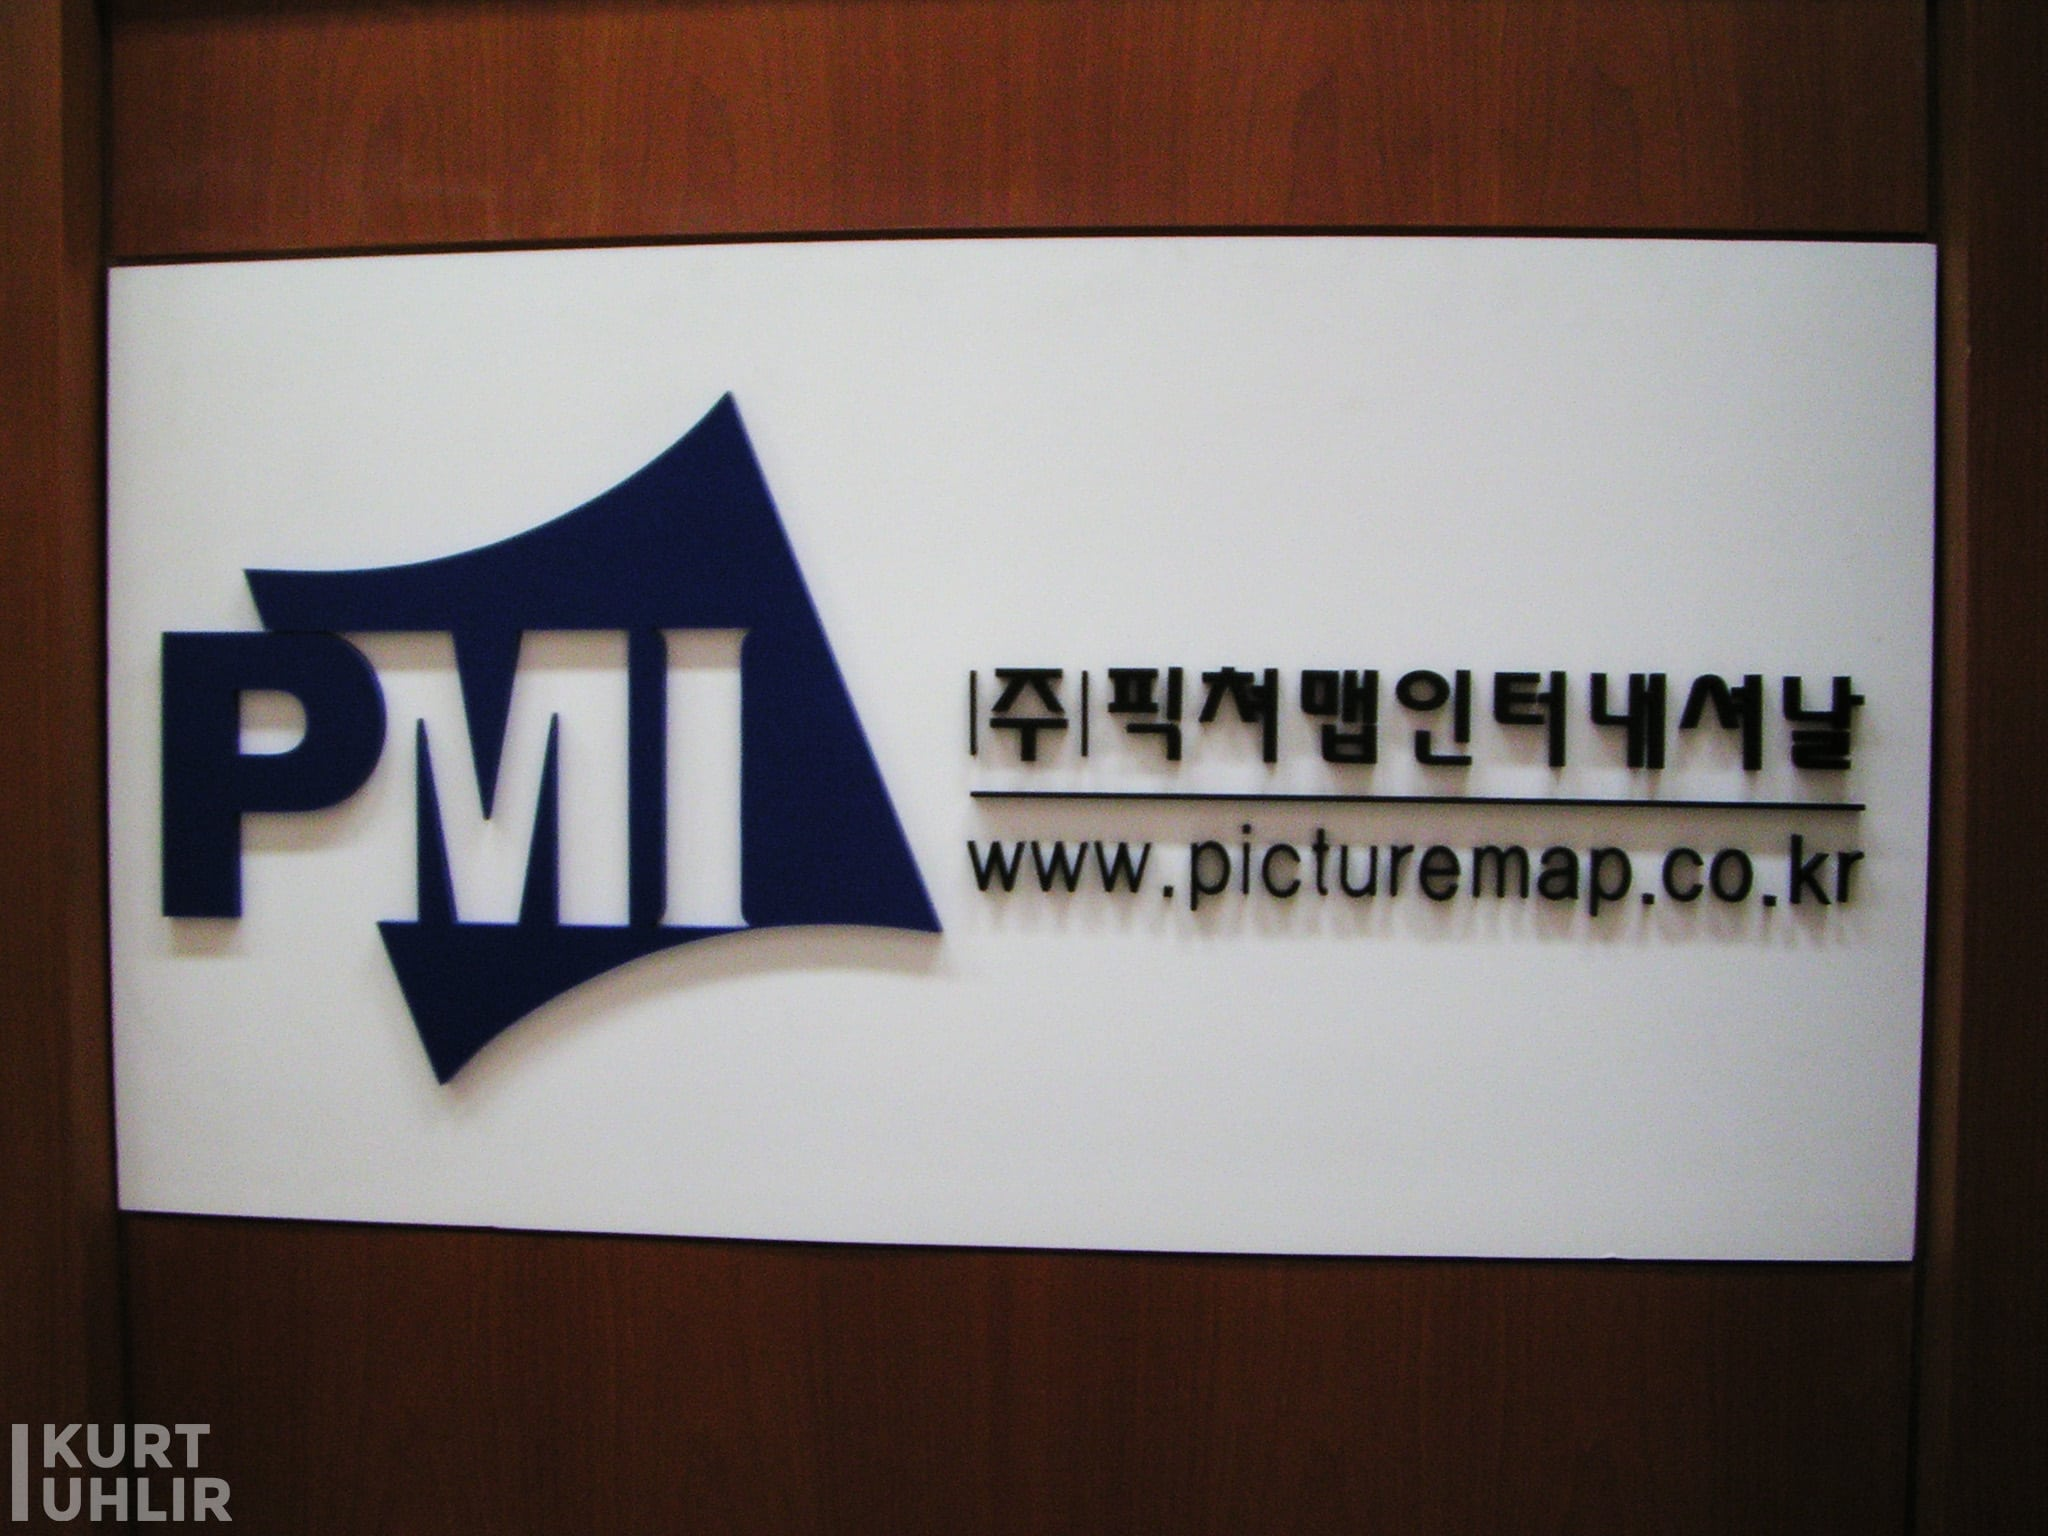 In July 2005, Navteq acquired Picture Map International (PMI), a South Korean digital map company, for about $30 million. Headquarters sign as we arrive.